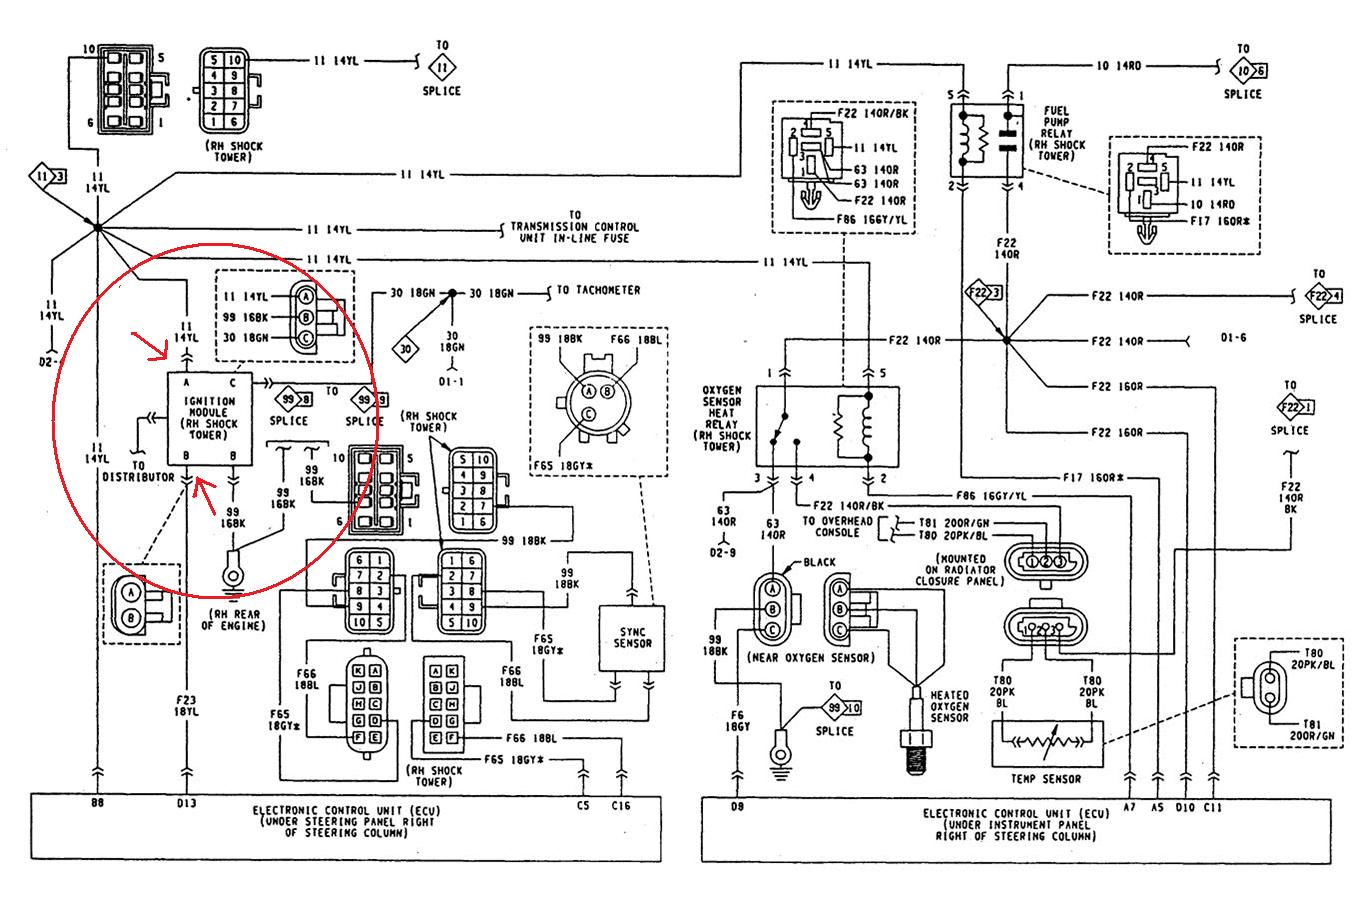 2013 03 13_154412_1 wiring diagram 1995 jeep schematics and wiring diagrams jeep wrangler wiring diagram free at mr168.co